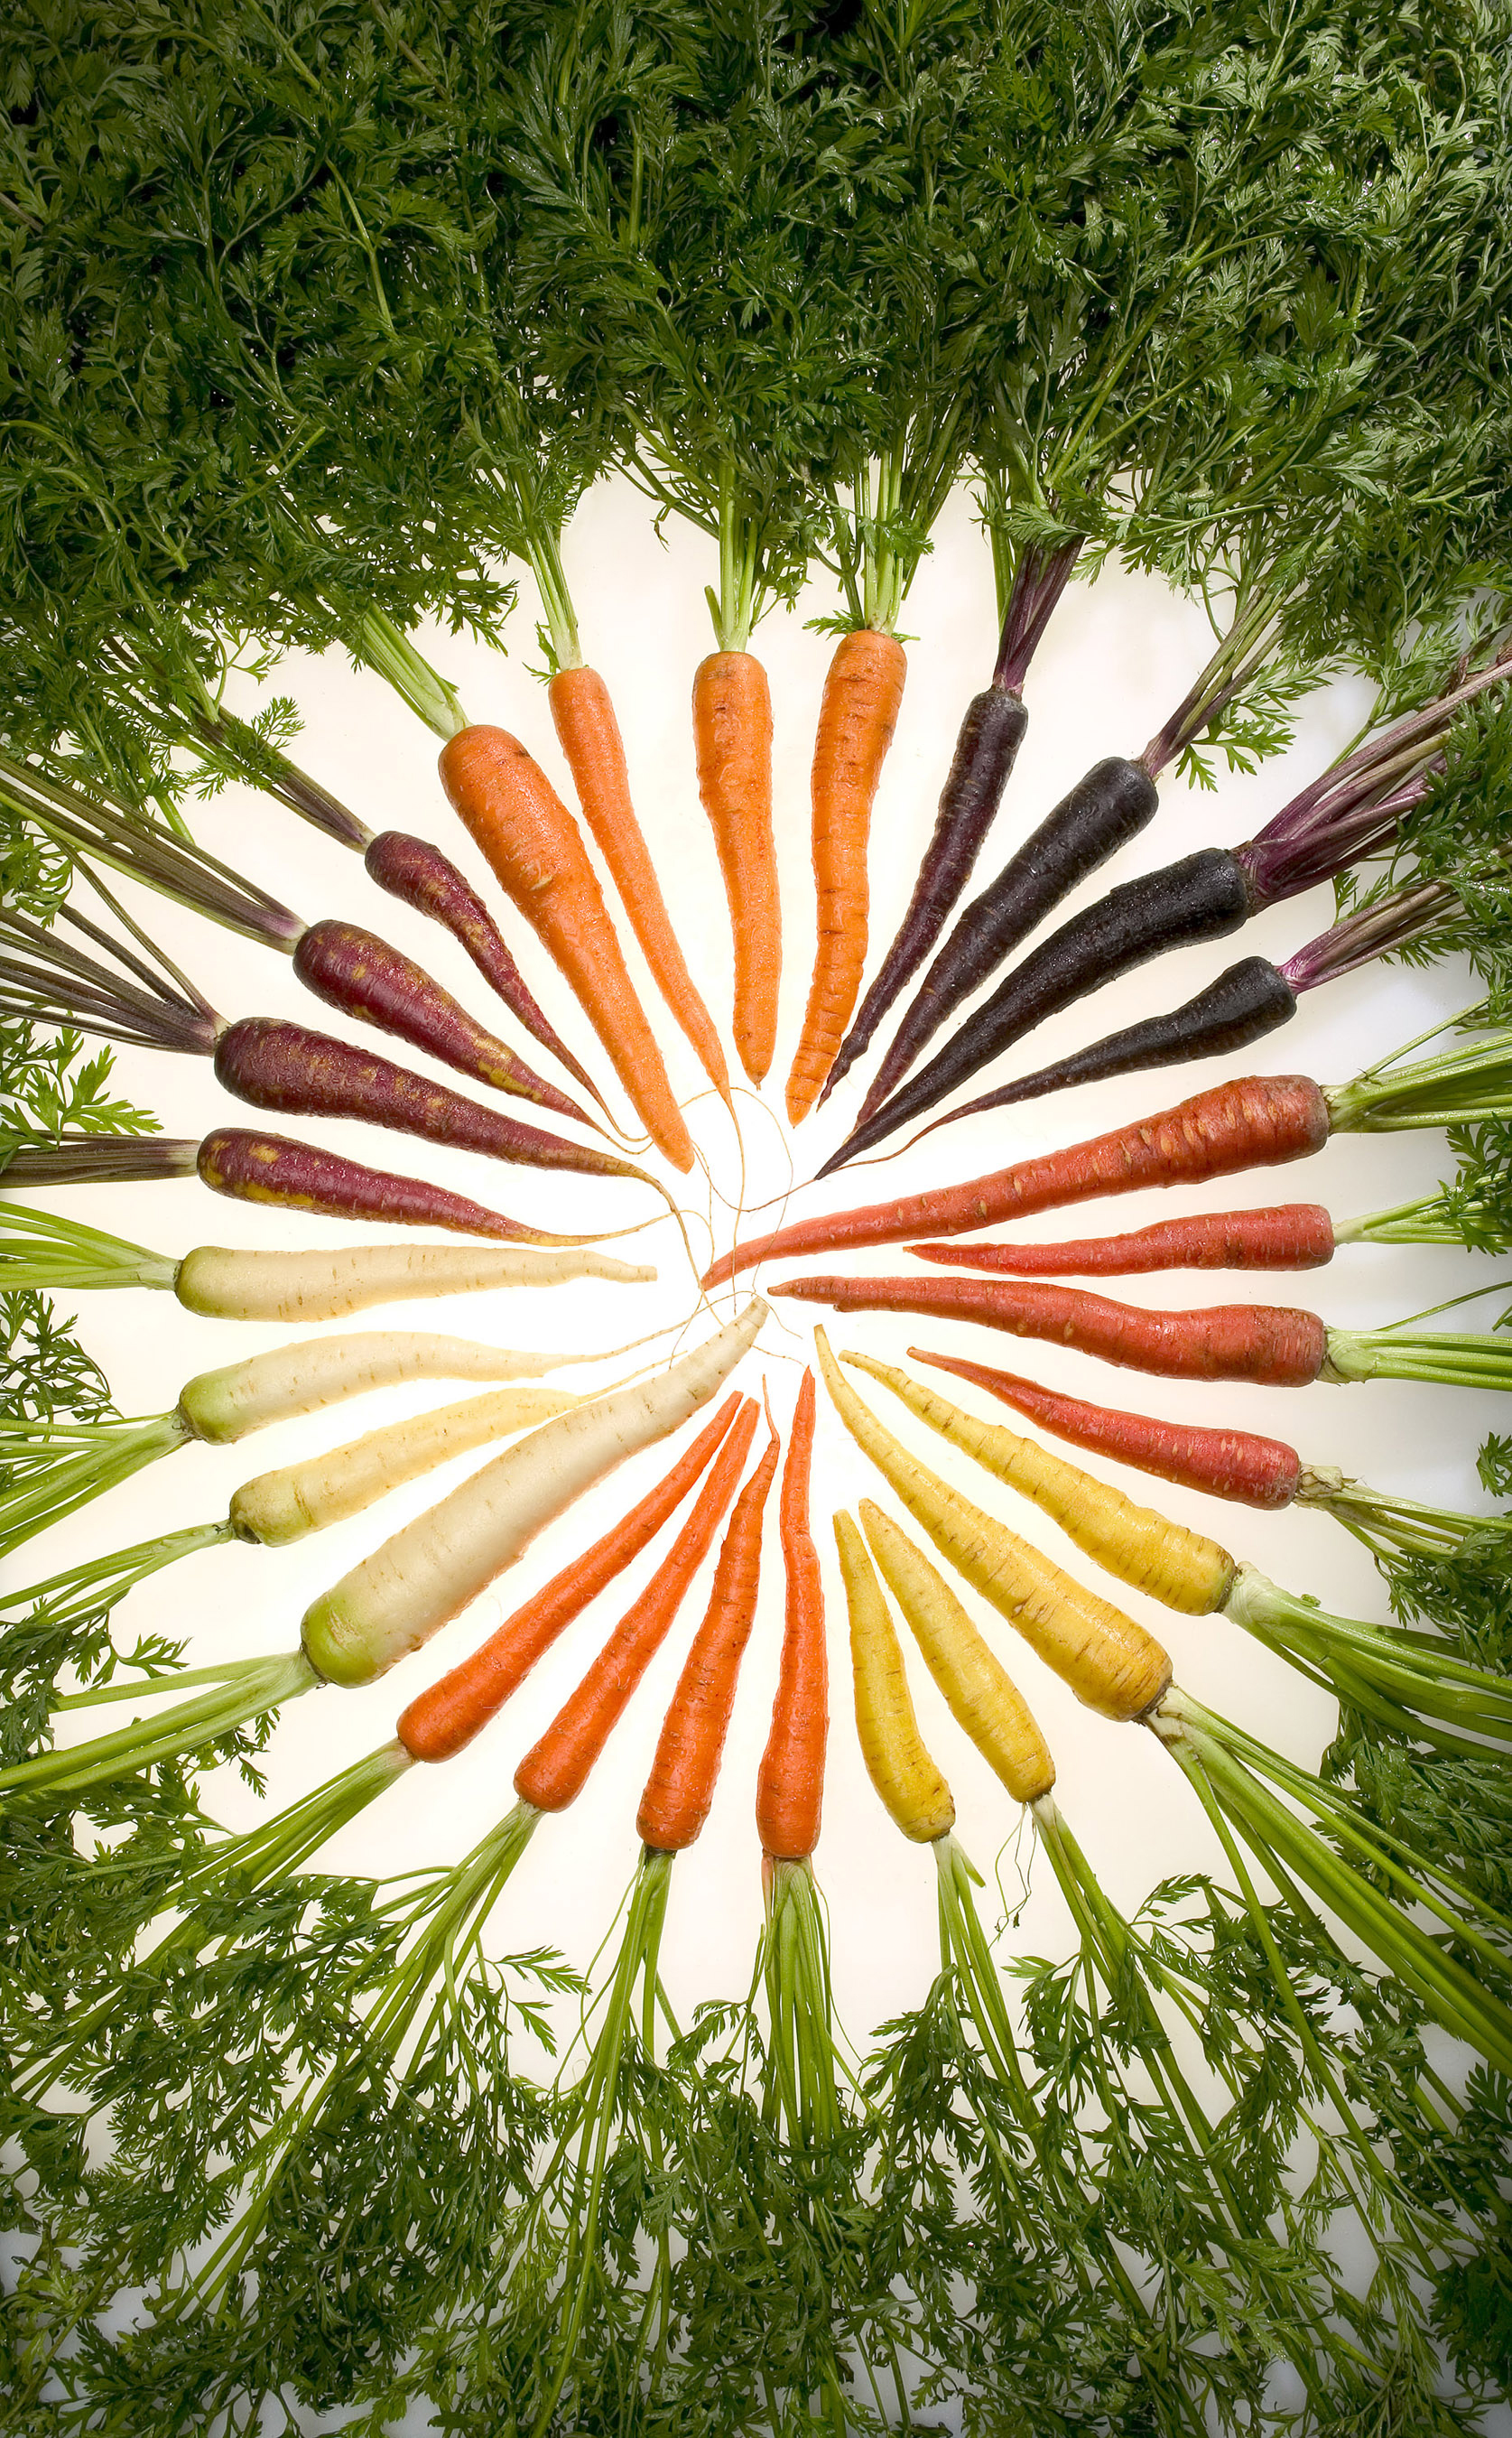 File:Carrots of many colors.jpg - Wikipedia, the free encyclopedia